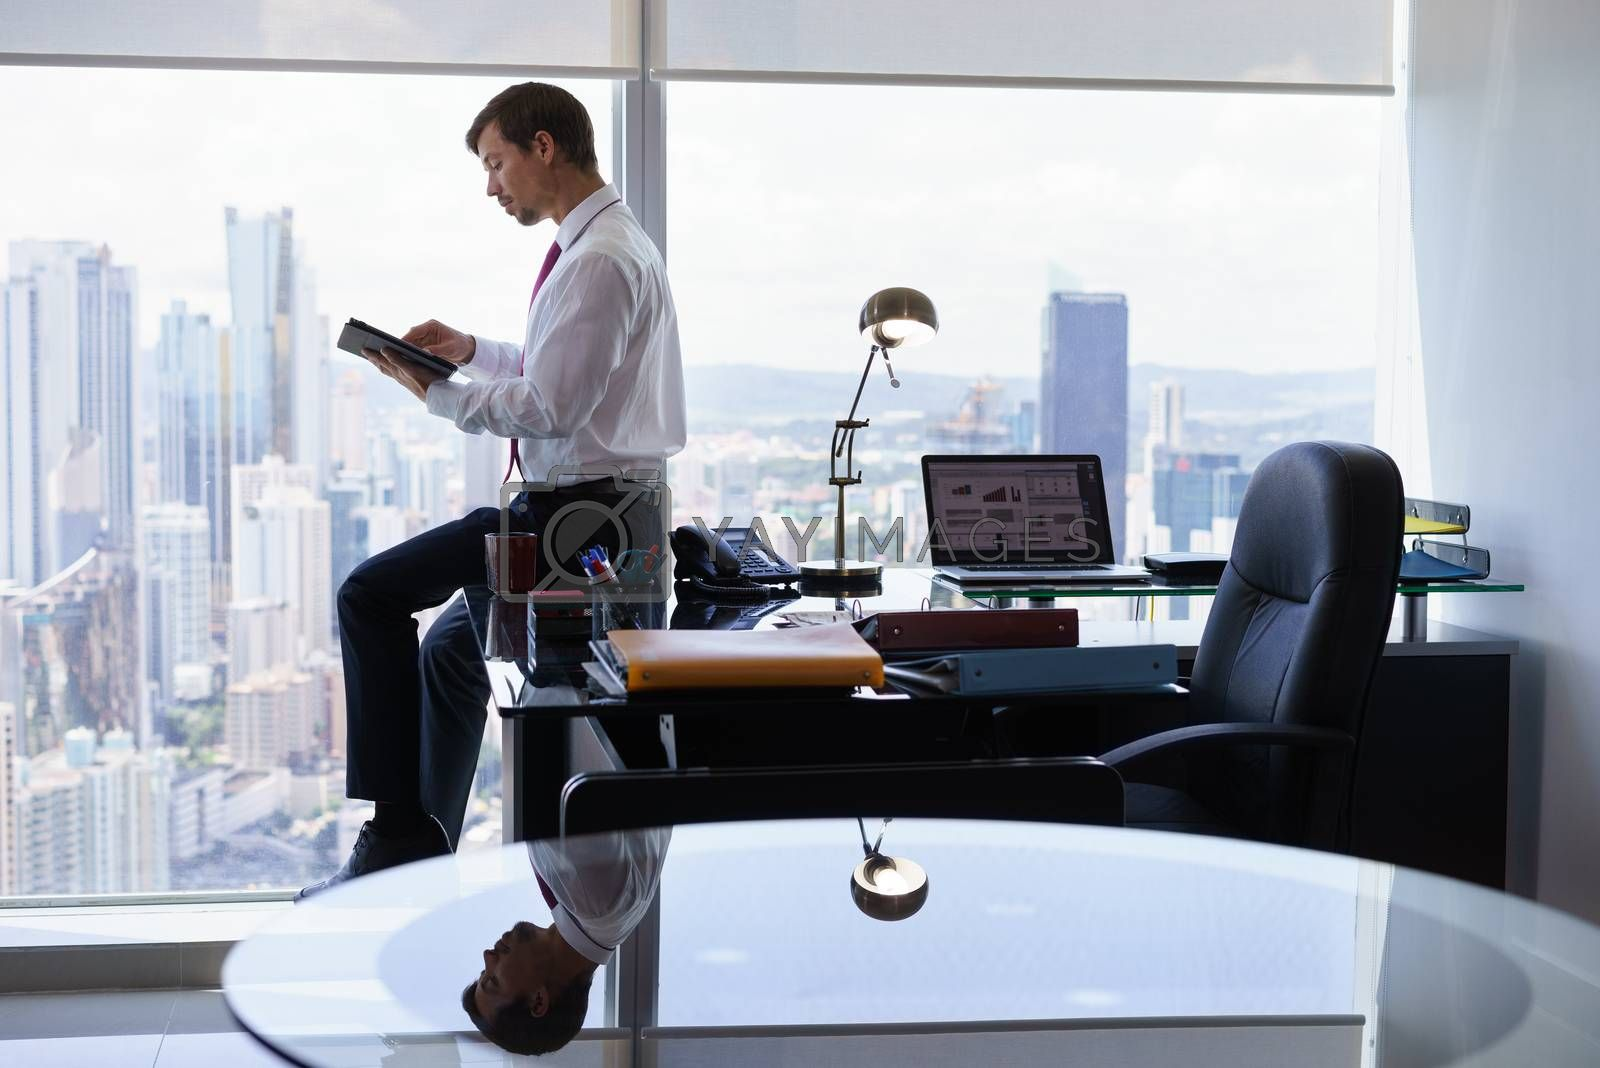 Adult businessman sitting on desk in modern office and reading news on tablet pc. The man works in a skyscraper with a view of the city from the large window.